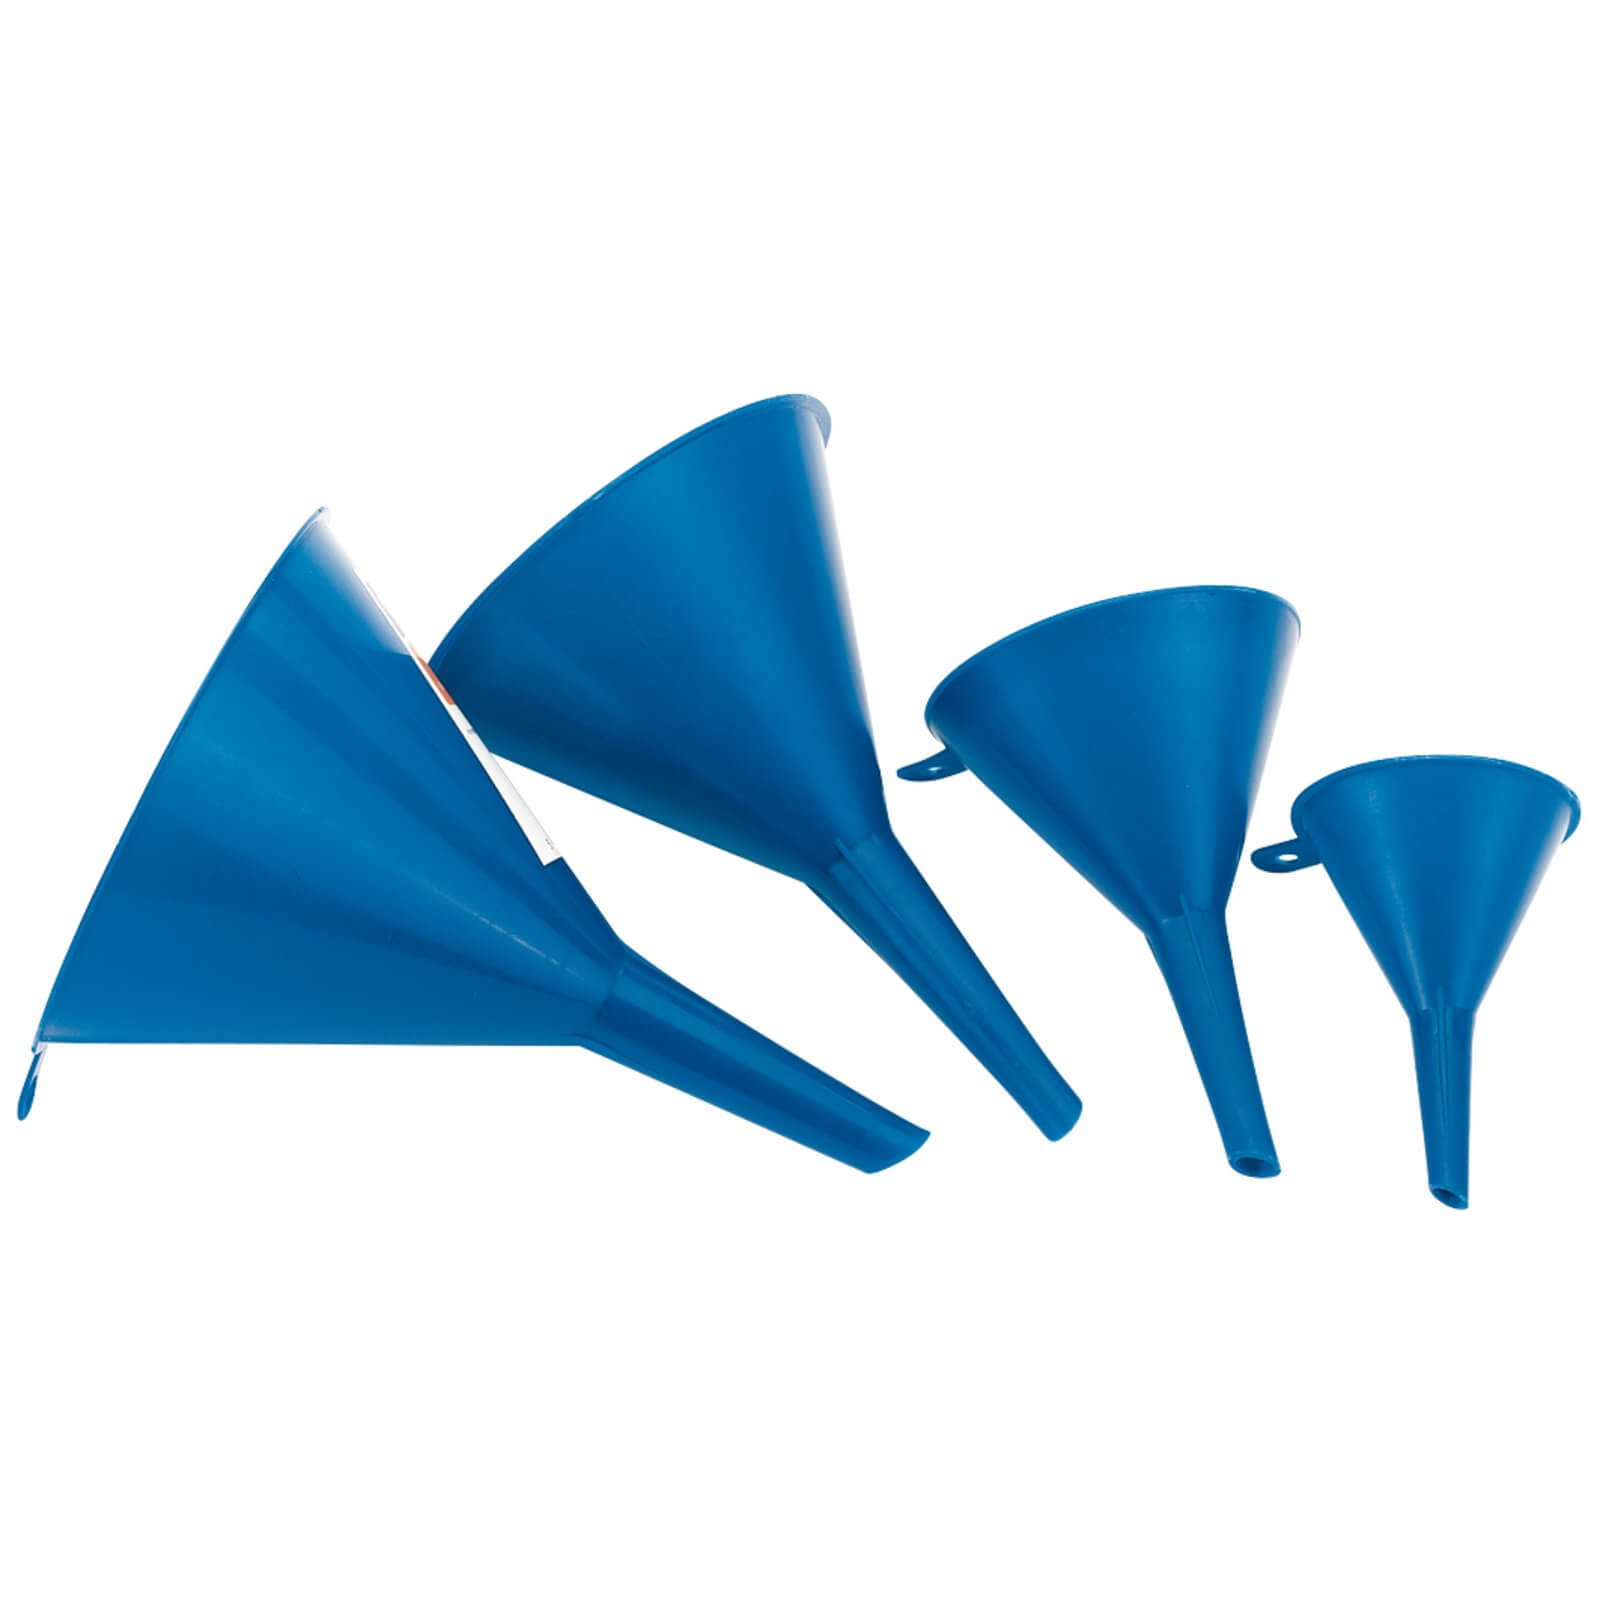 Image of Draper 4 Piece Plastic Funnel Set